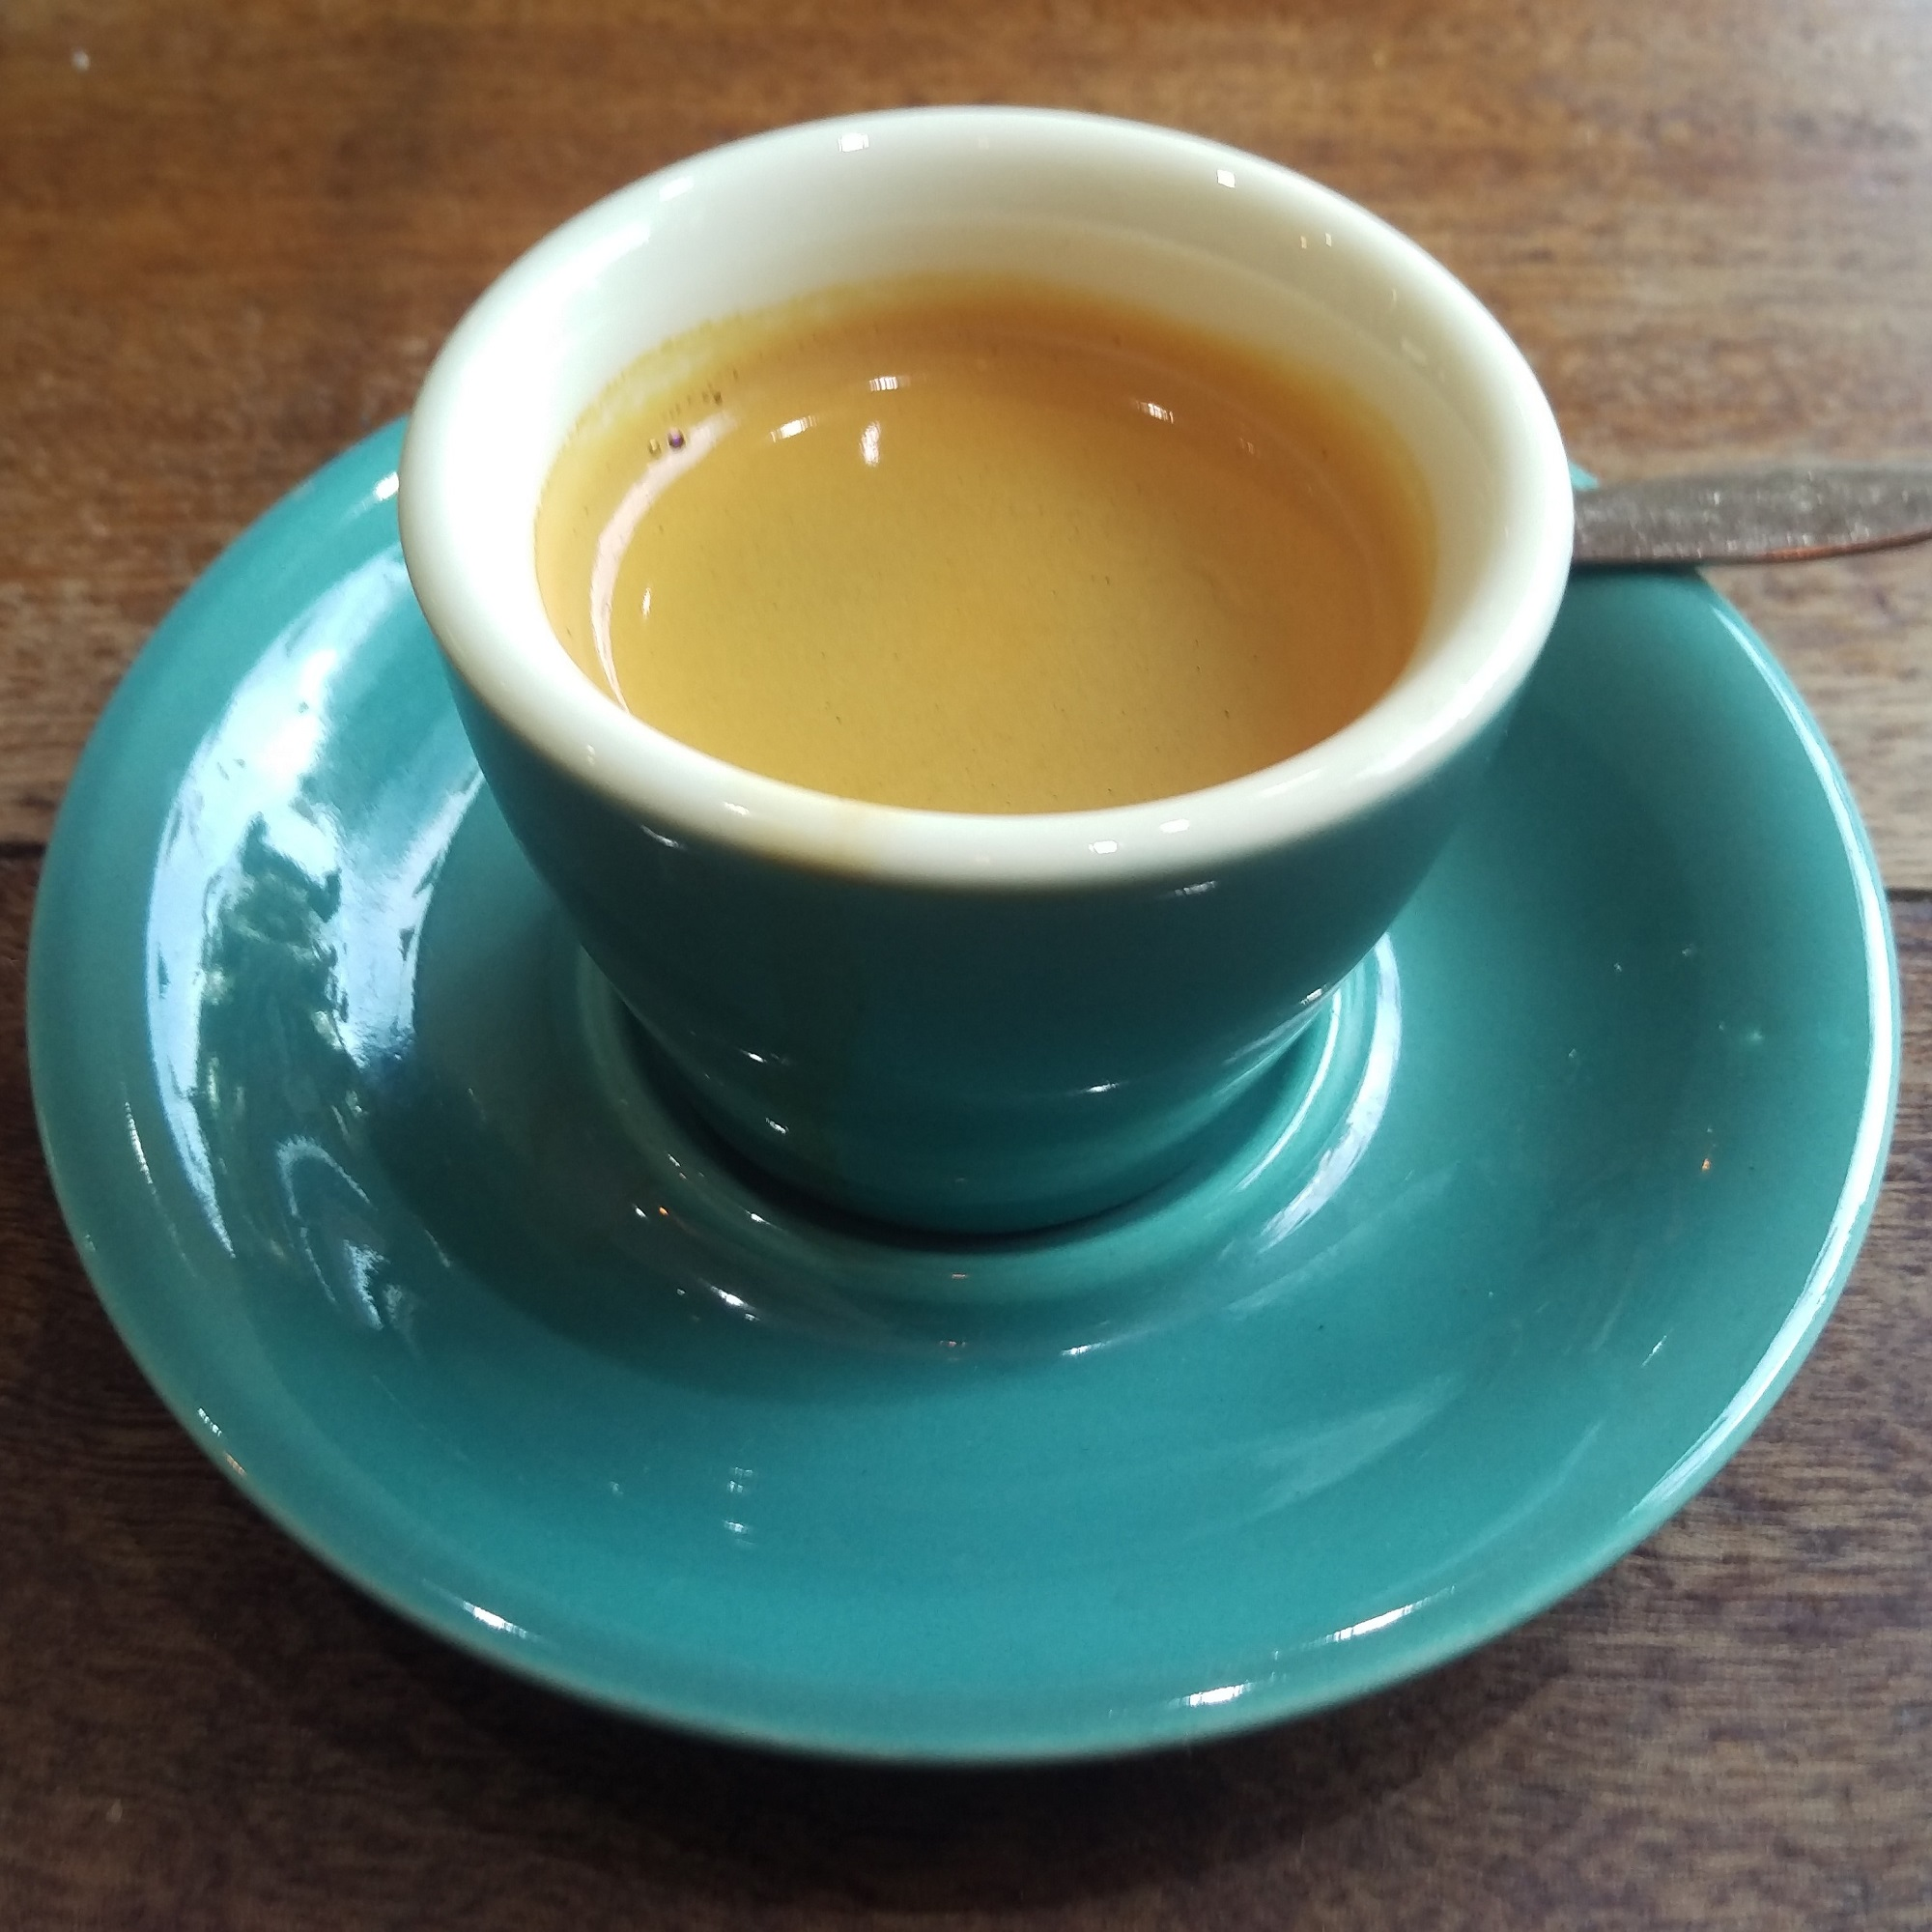 My Peruvian single-origin espresso from Cast Iron Roasters, served in a gorgeous, handleless blue cup at Second Shot in Bethnal Green.